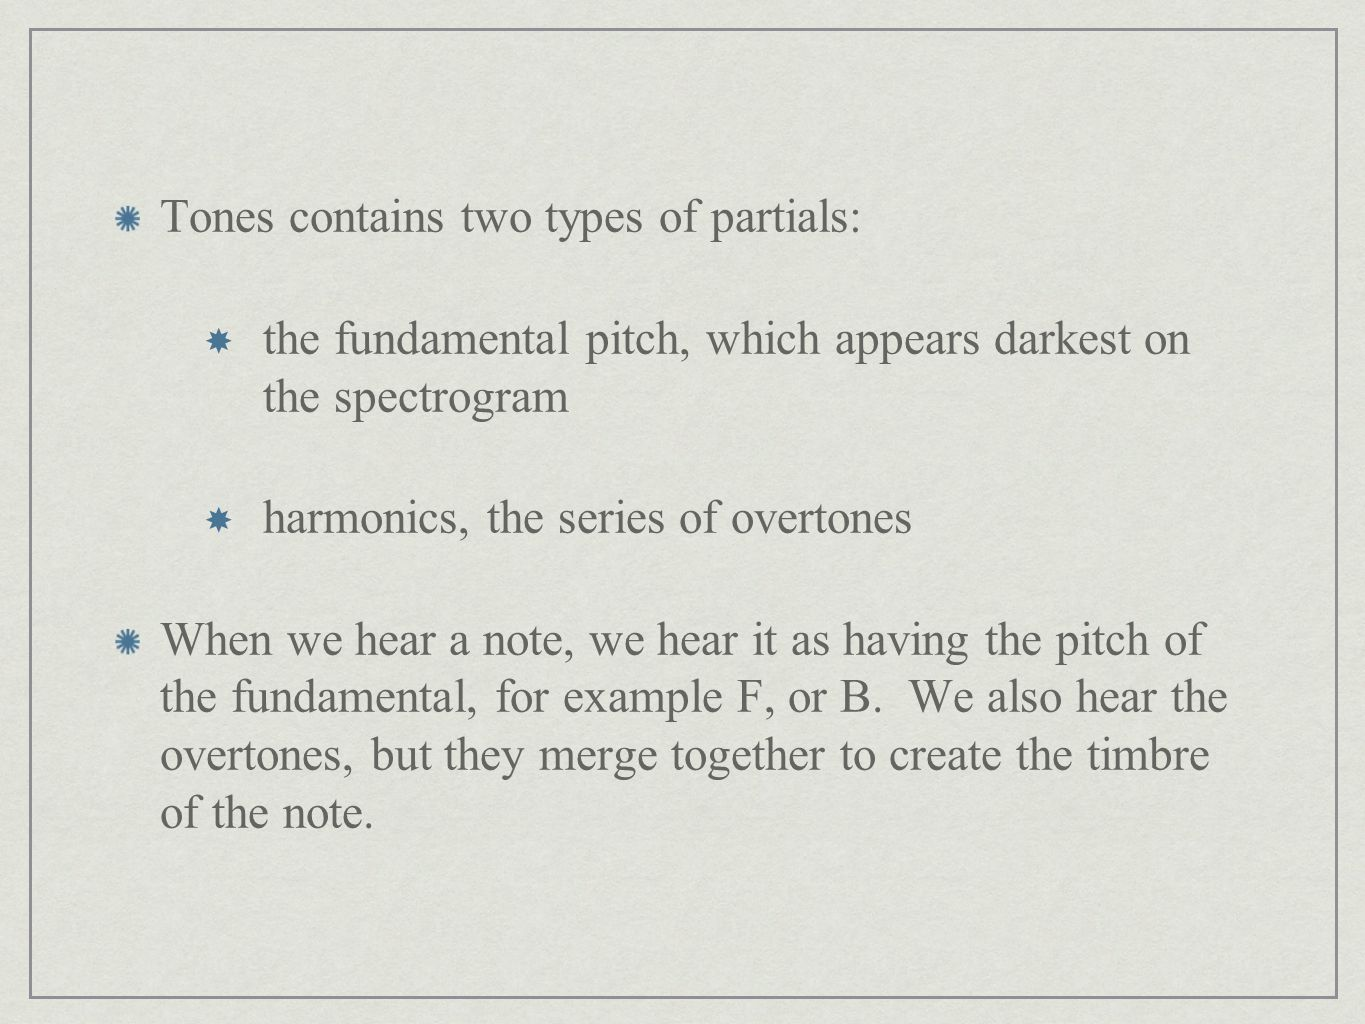 Tones contains two types of partials: